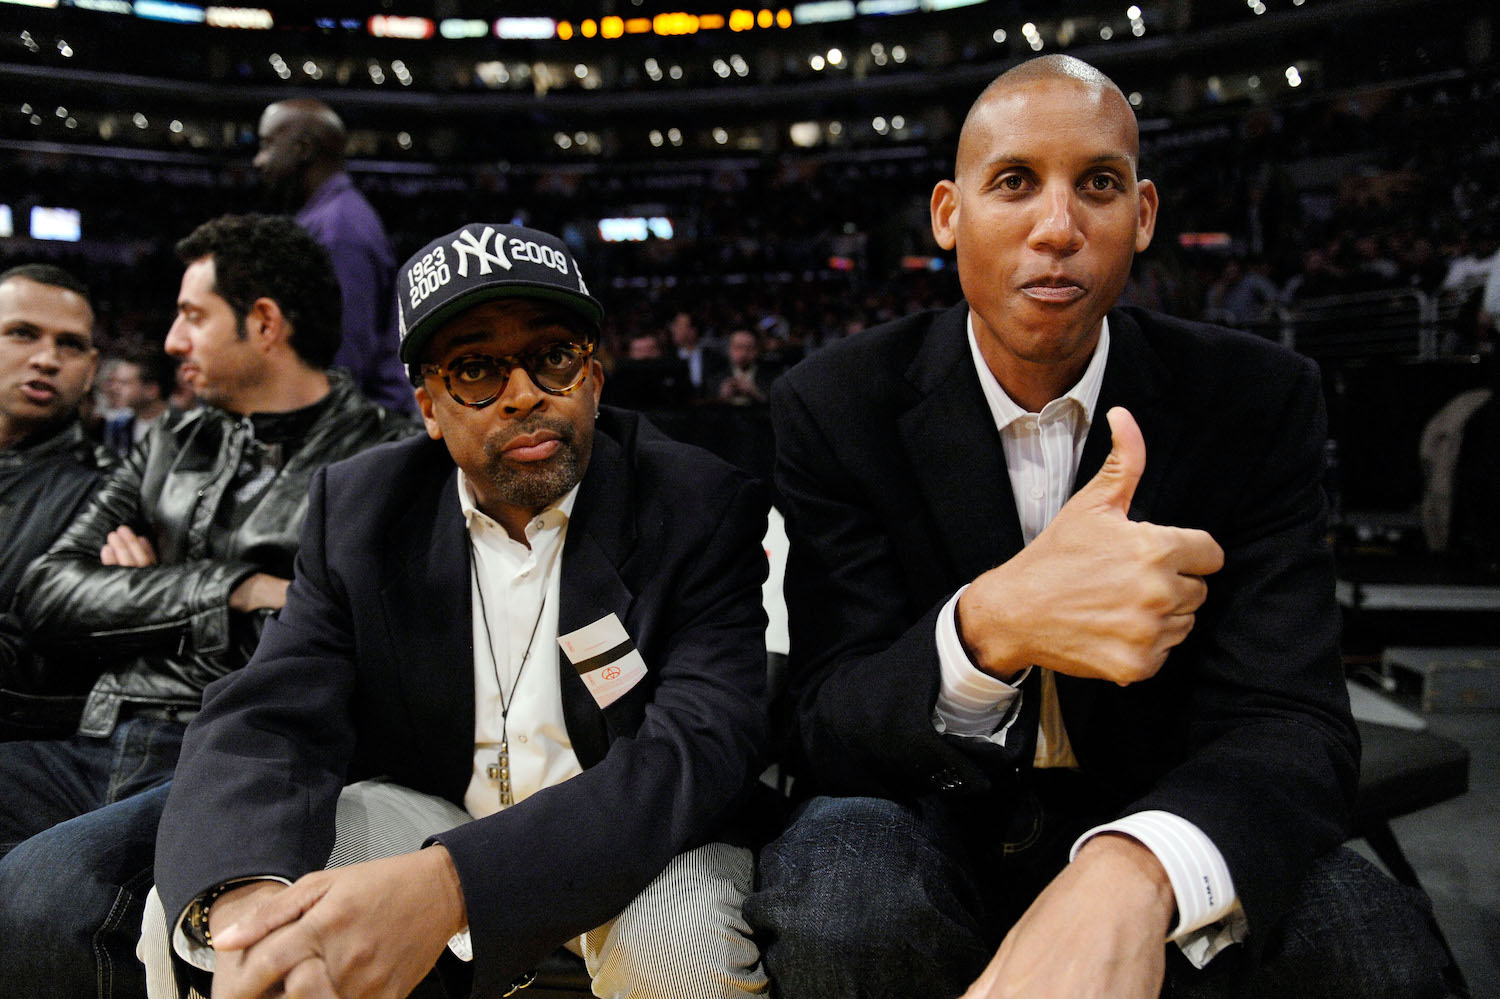 Reggie Miller Lost Bet to Spike Lee and Had to Visit Mike Tyson in Prison